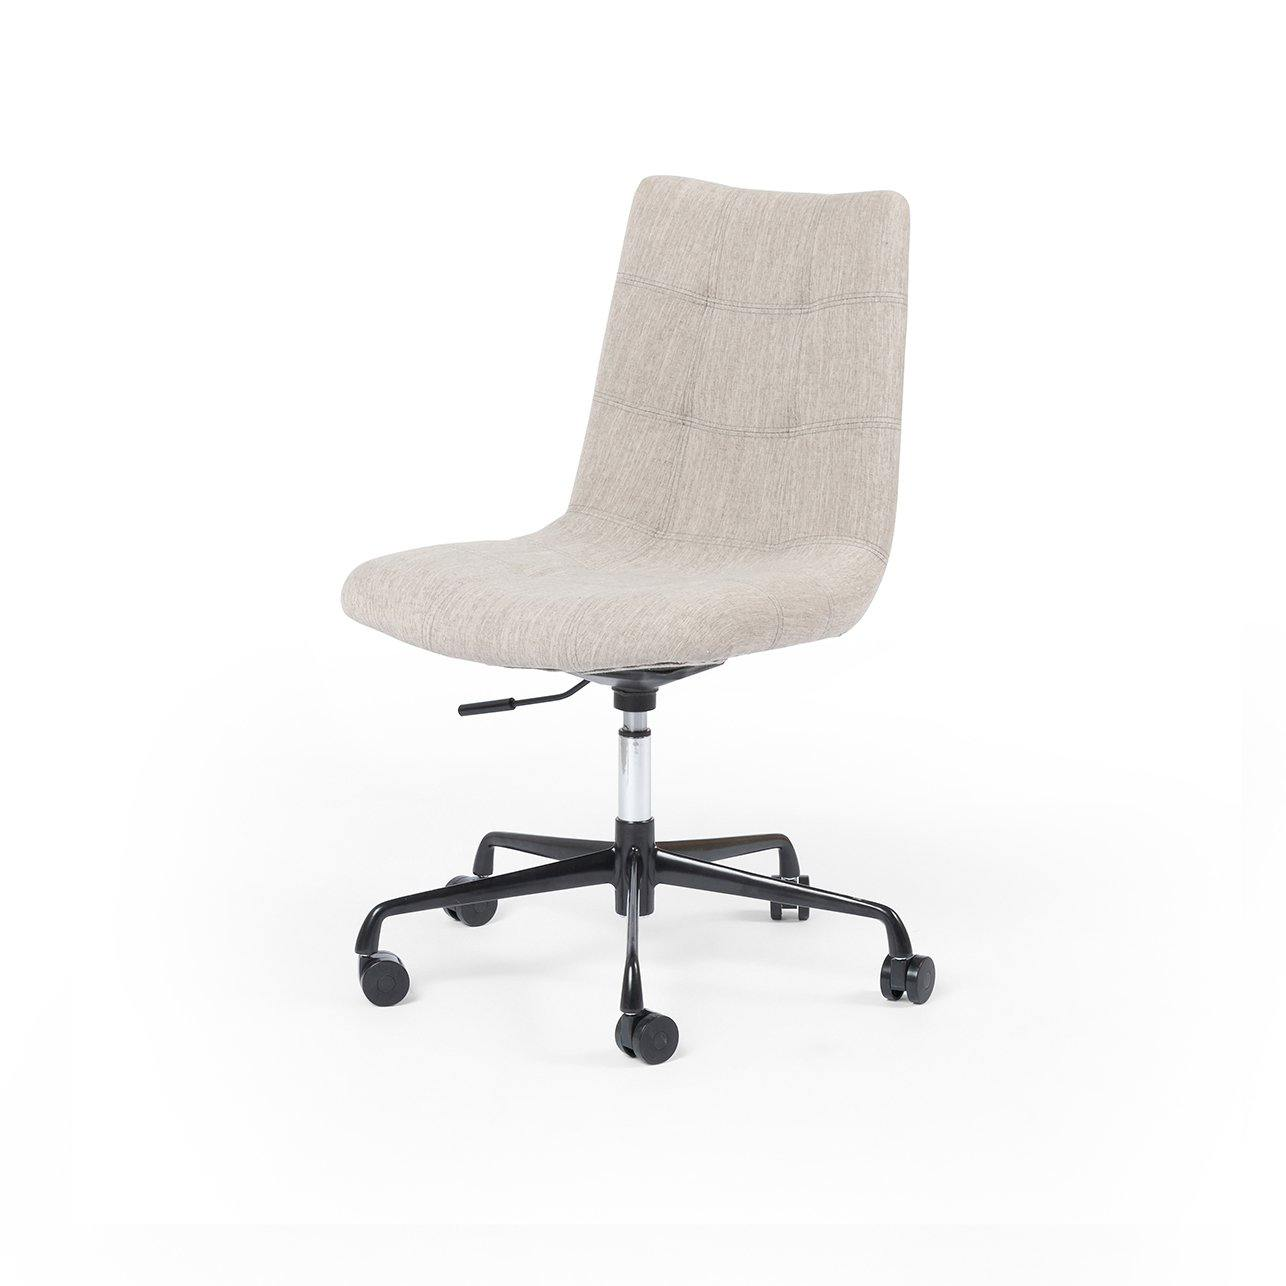 CAMILE DESK CHAIR - Reimagine Designs